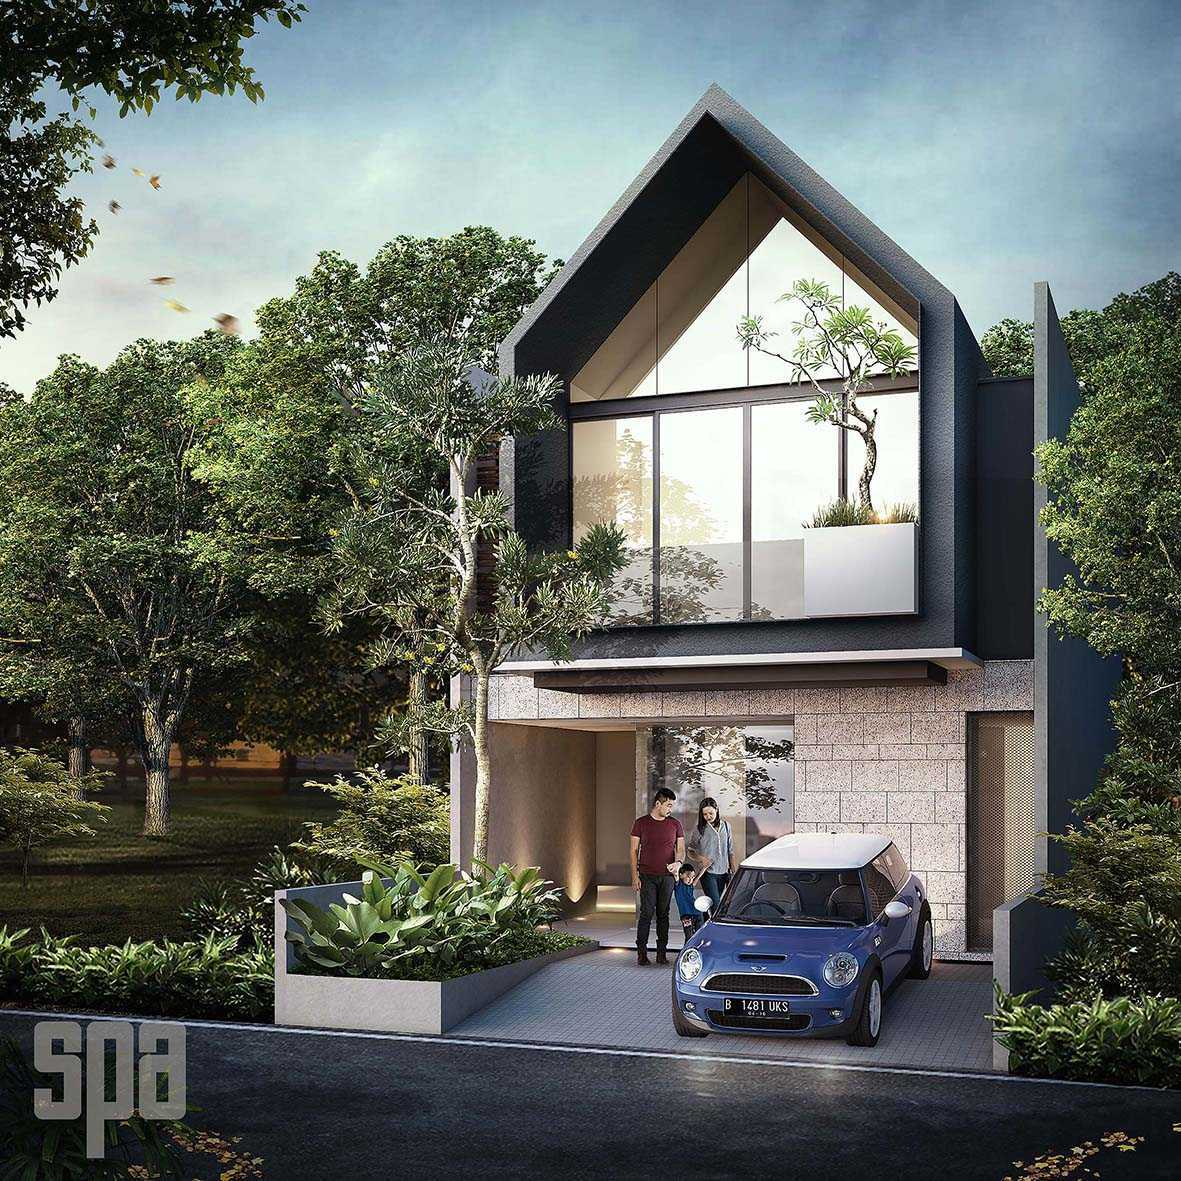 Simple Projects Architecture 'hhh' House Surabaya, Kota Sby, Jawa Timur, Indonesia  Exterior View Tropical 50378